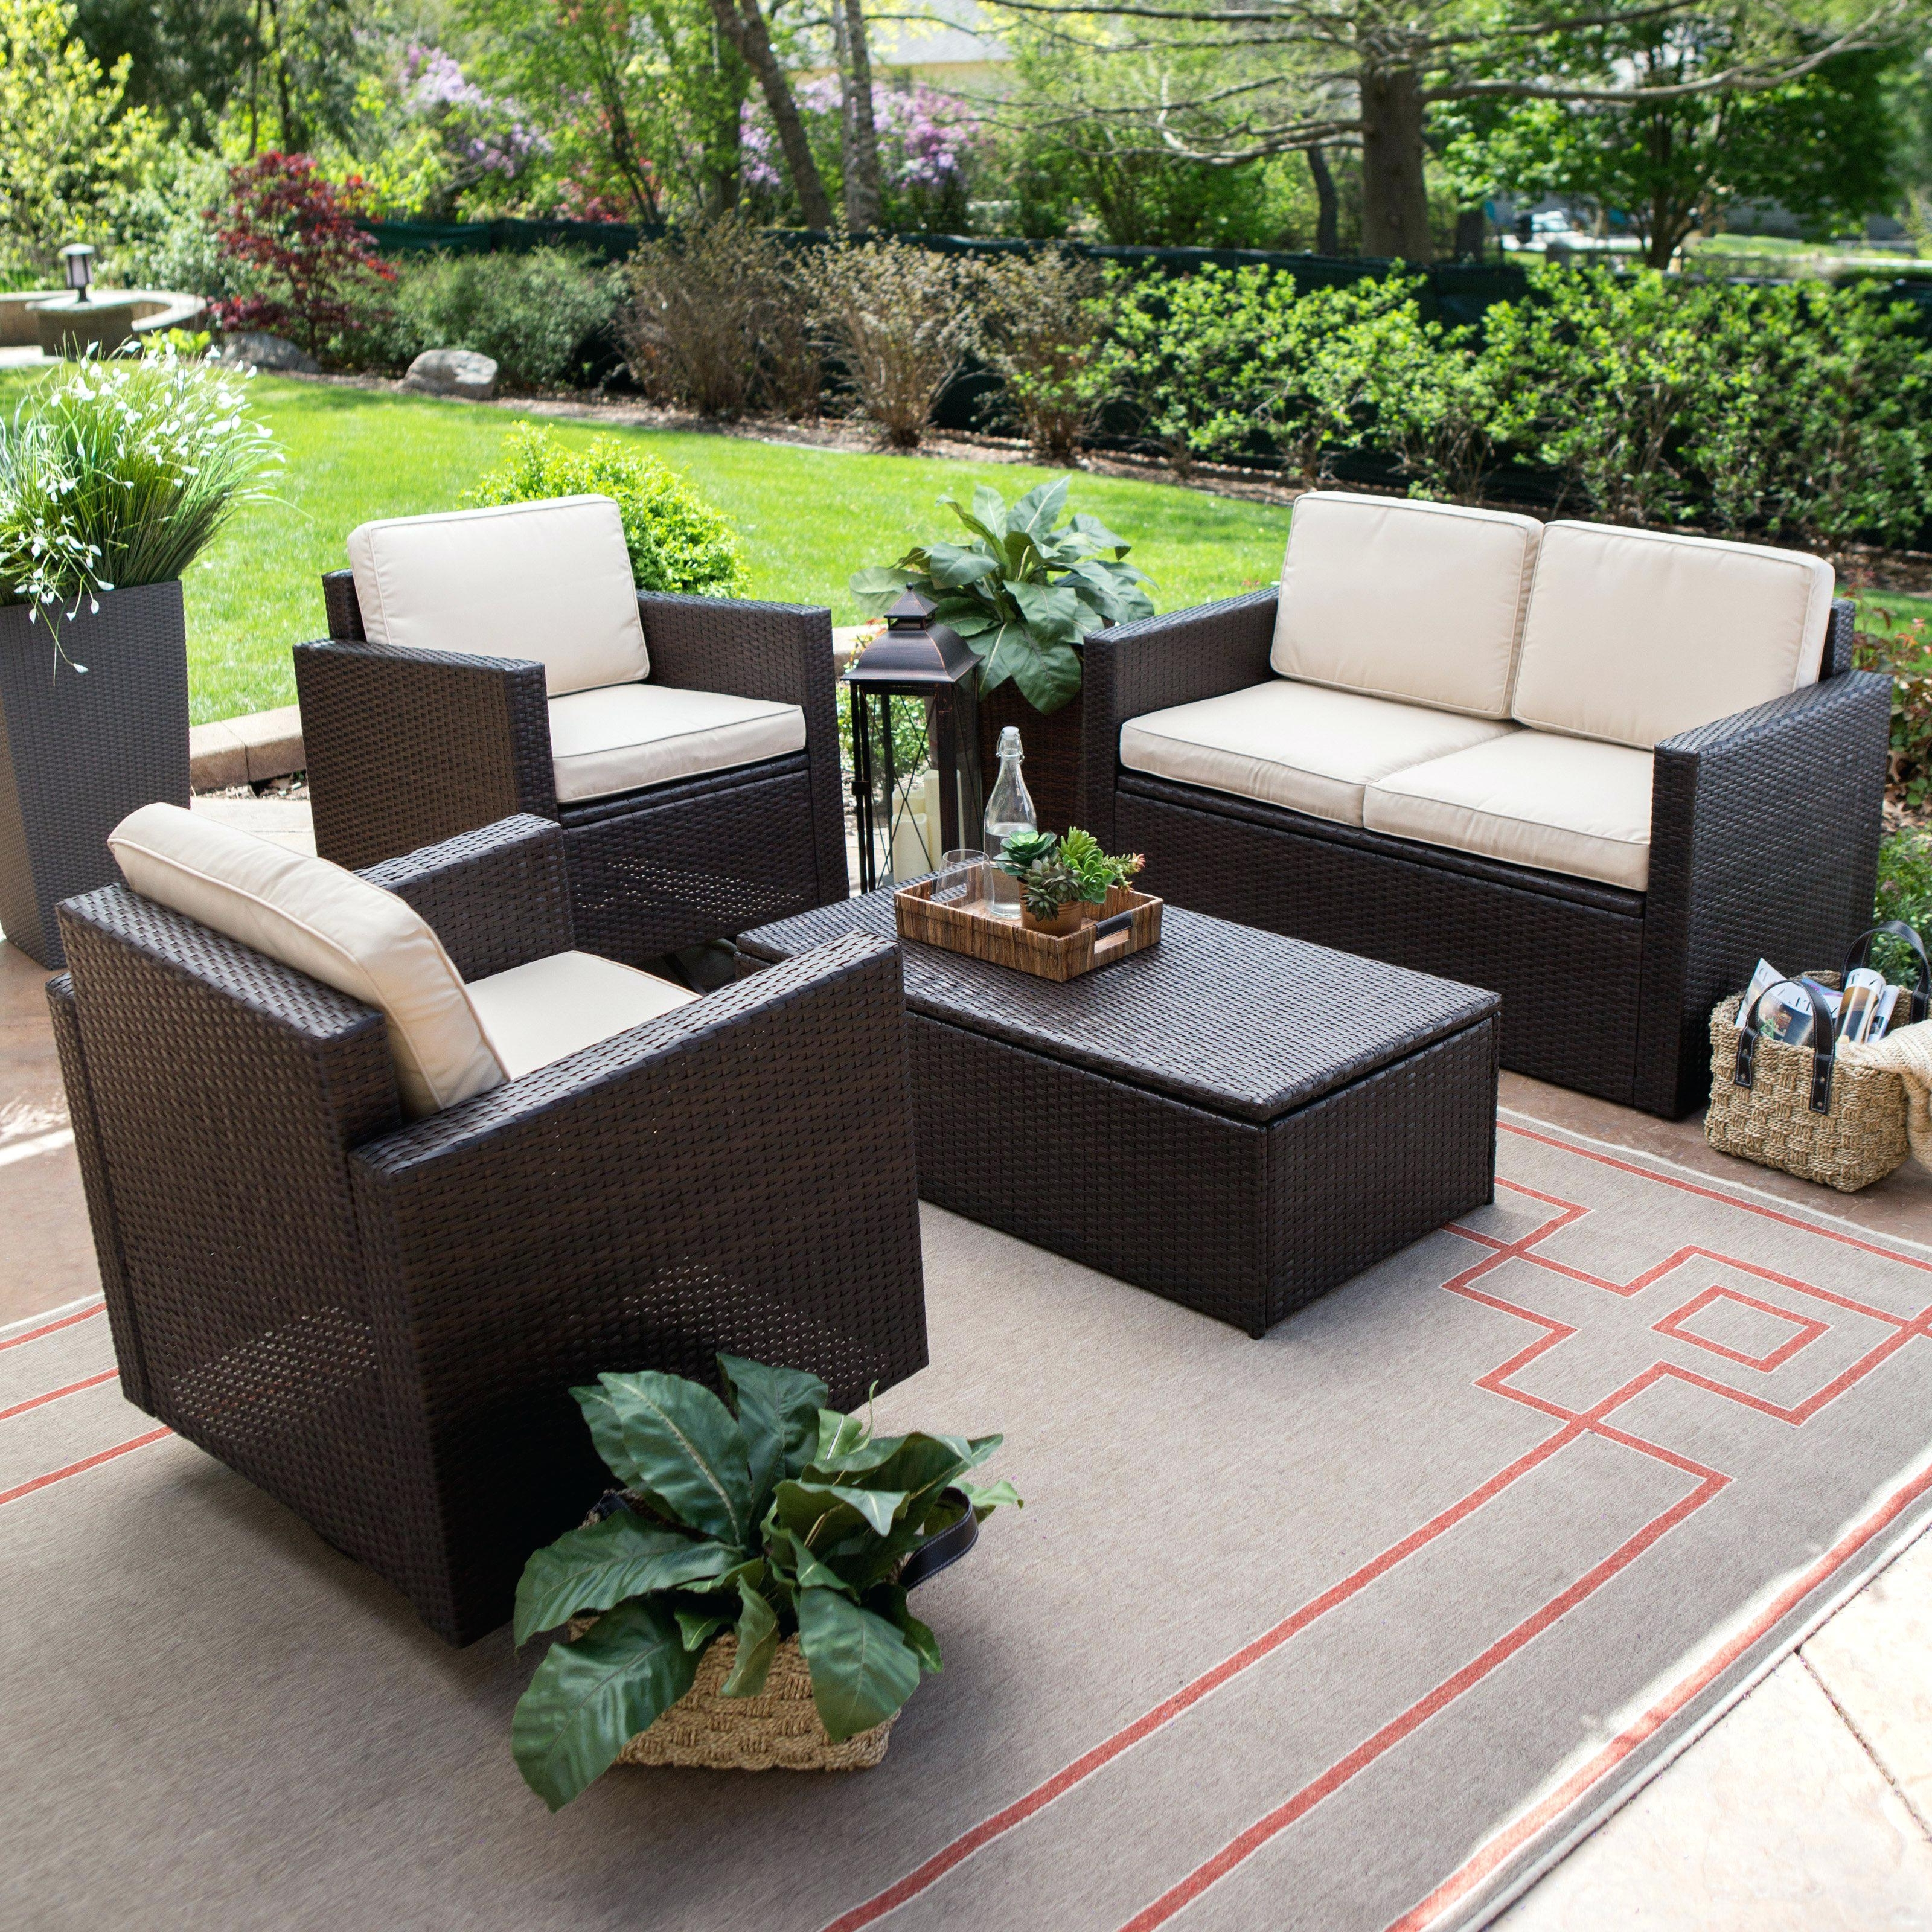 Patio Conversation Sets Coral Coast Wicker 4 Piece Conversation Set Pertaining To Well Liked Patio Conversation Sets (View 12 of 20)